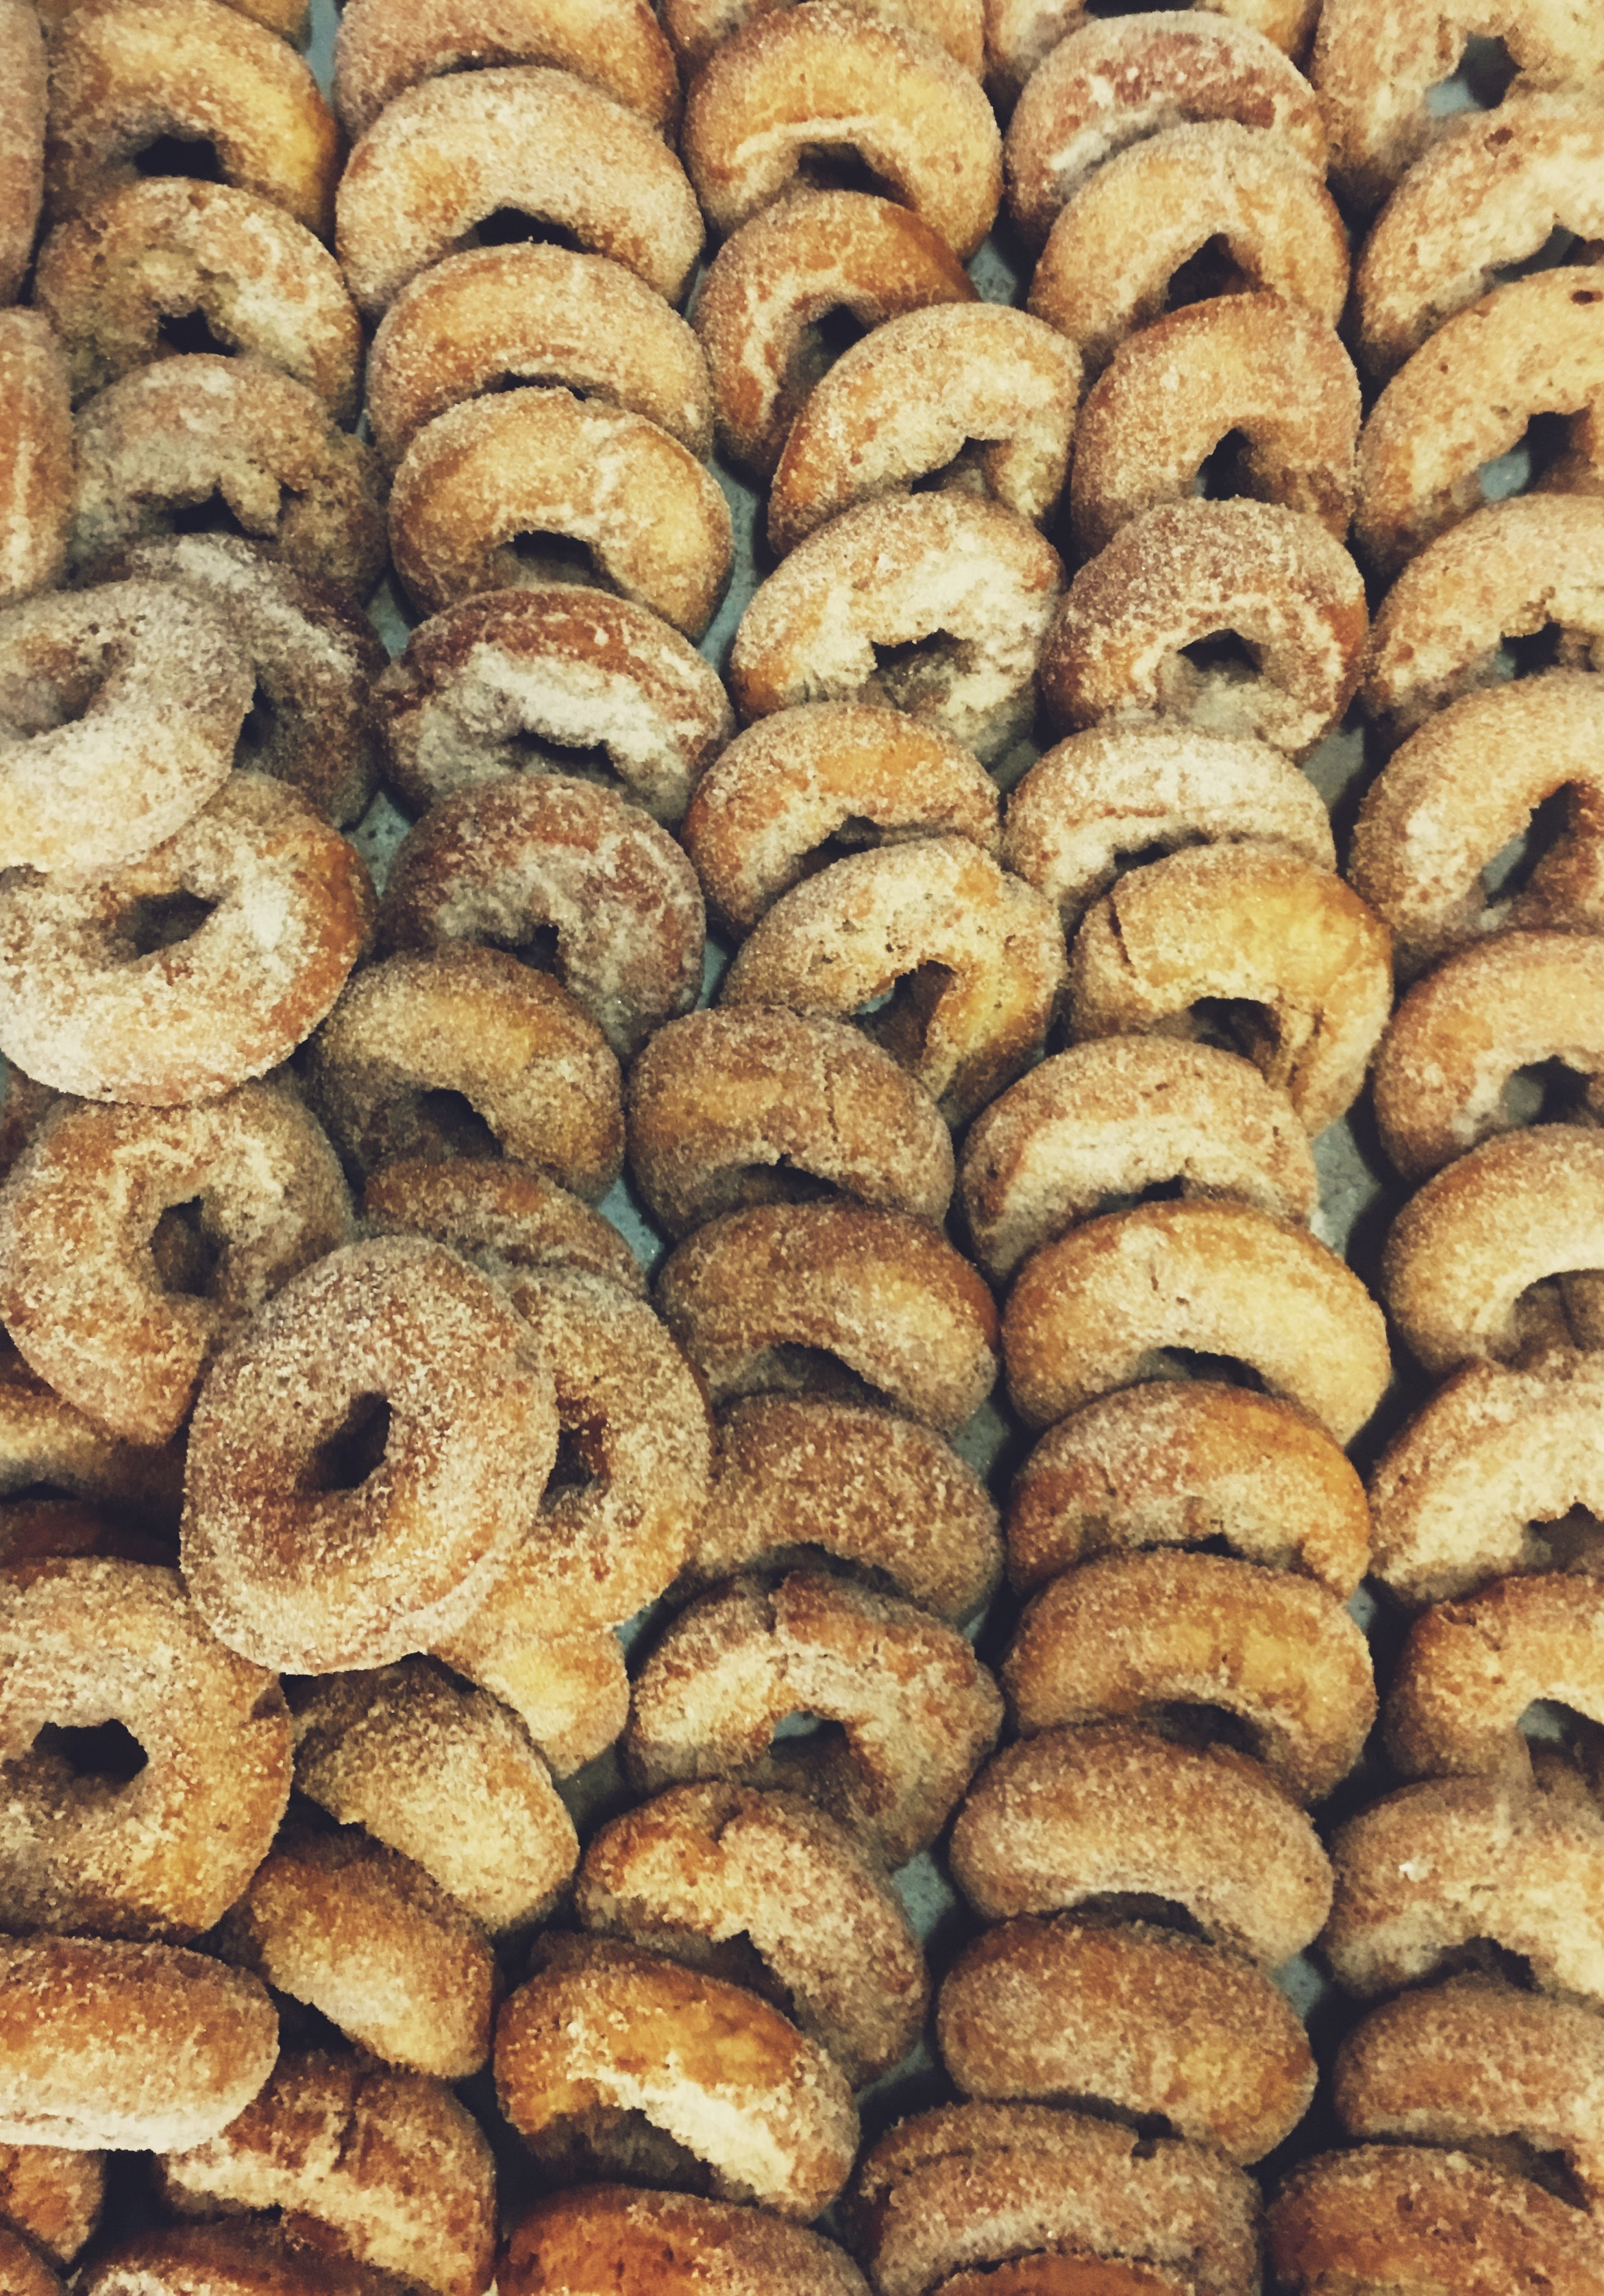 Apple cider donuts baked fresh daily at Russo's.